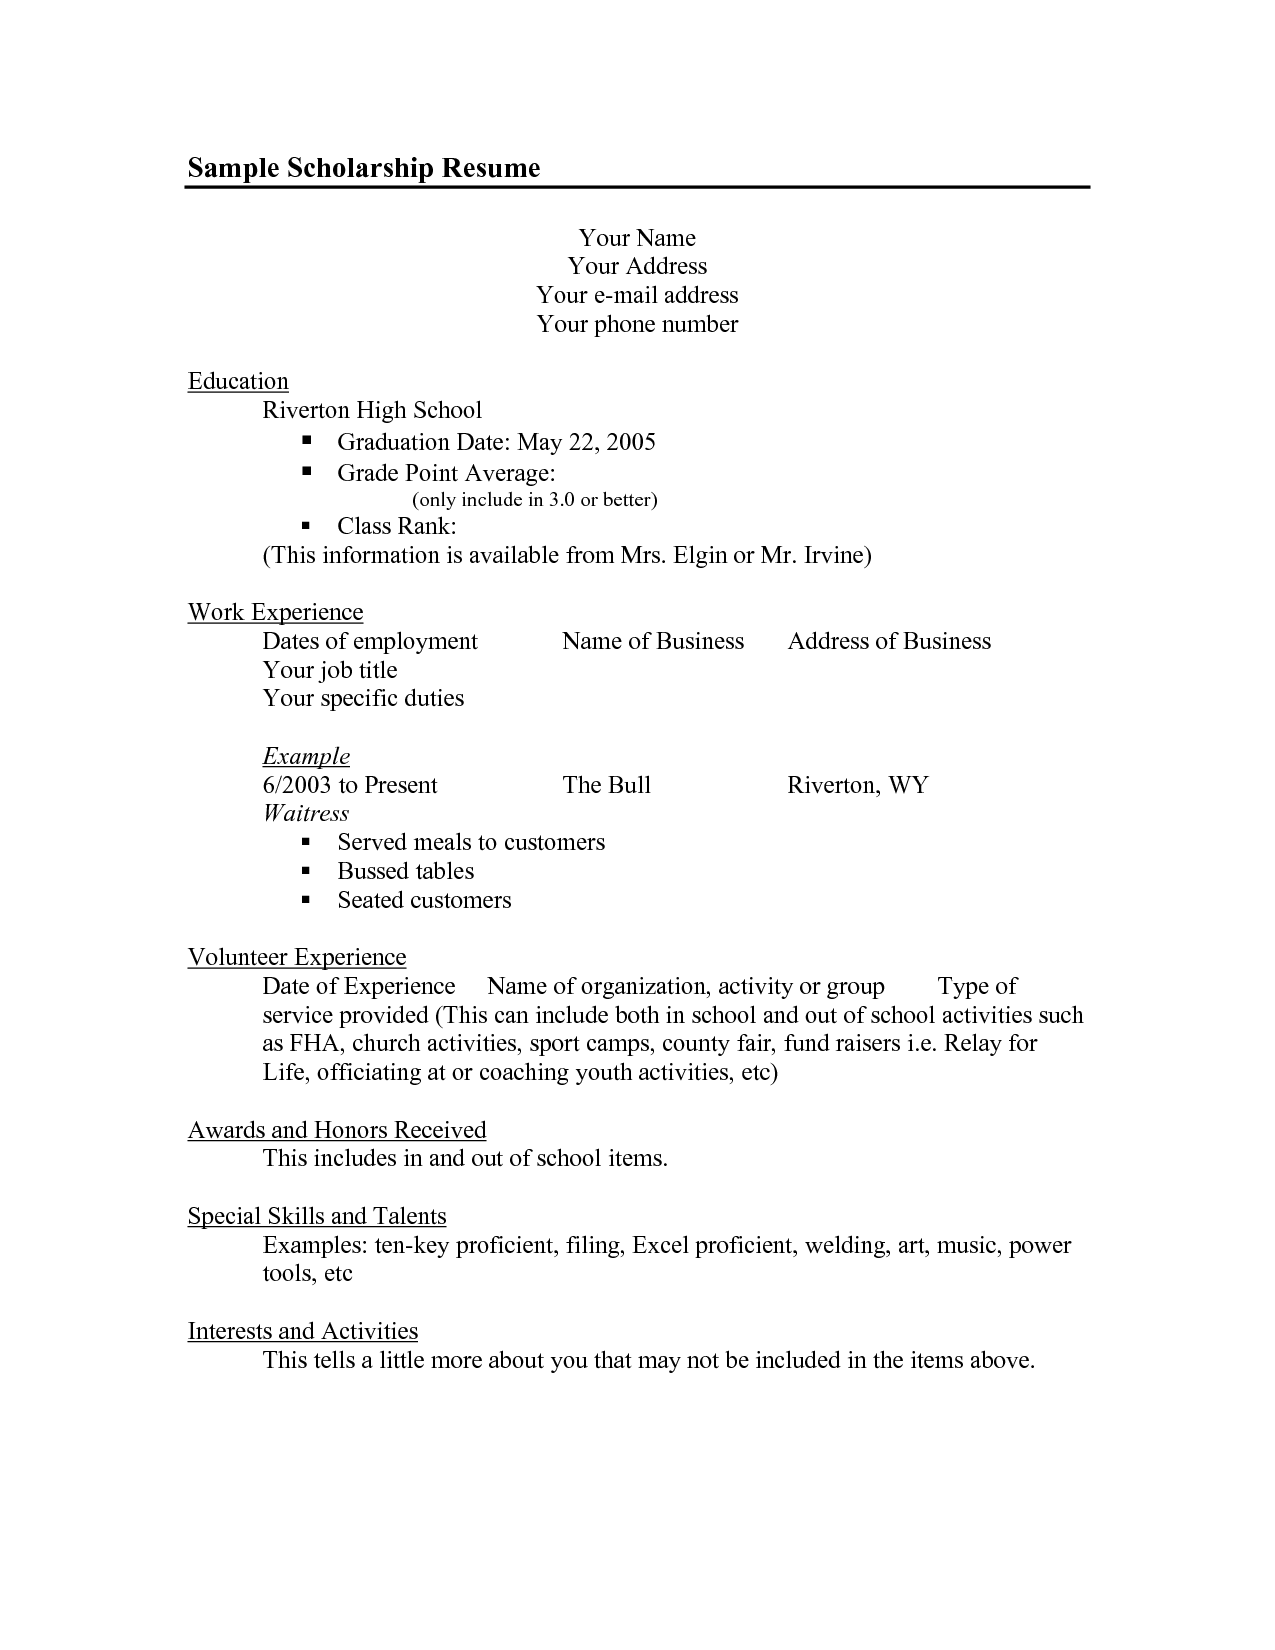 Scholarship Resume Templates